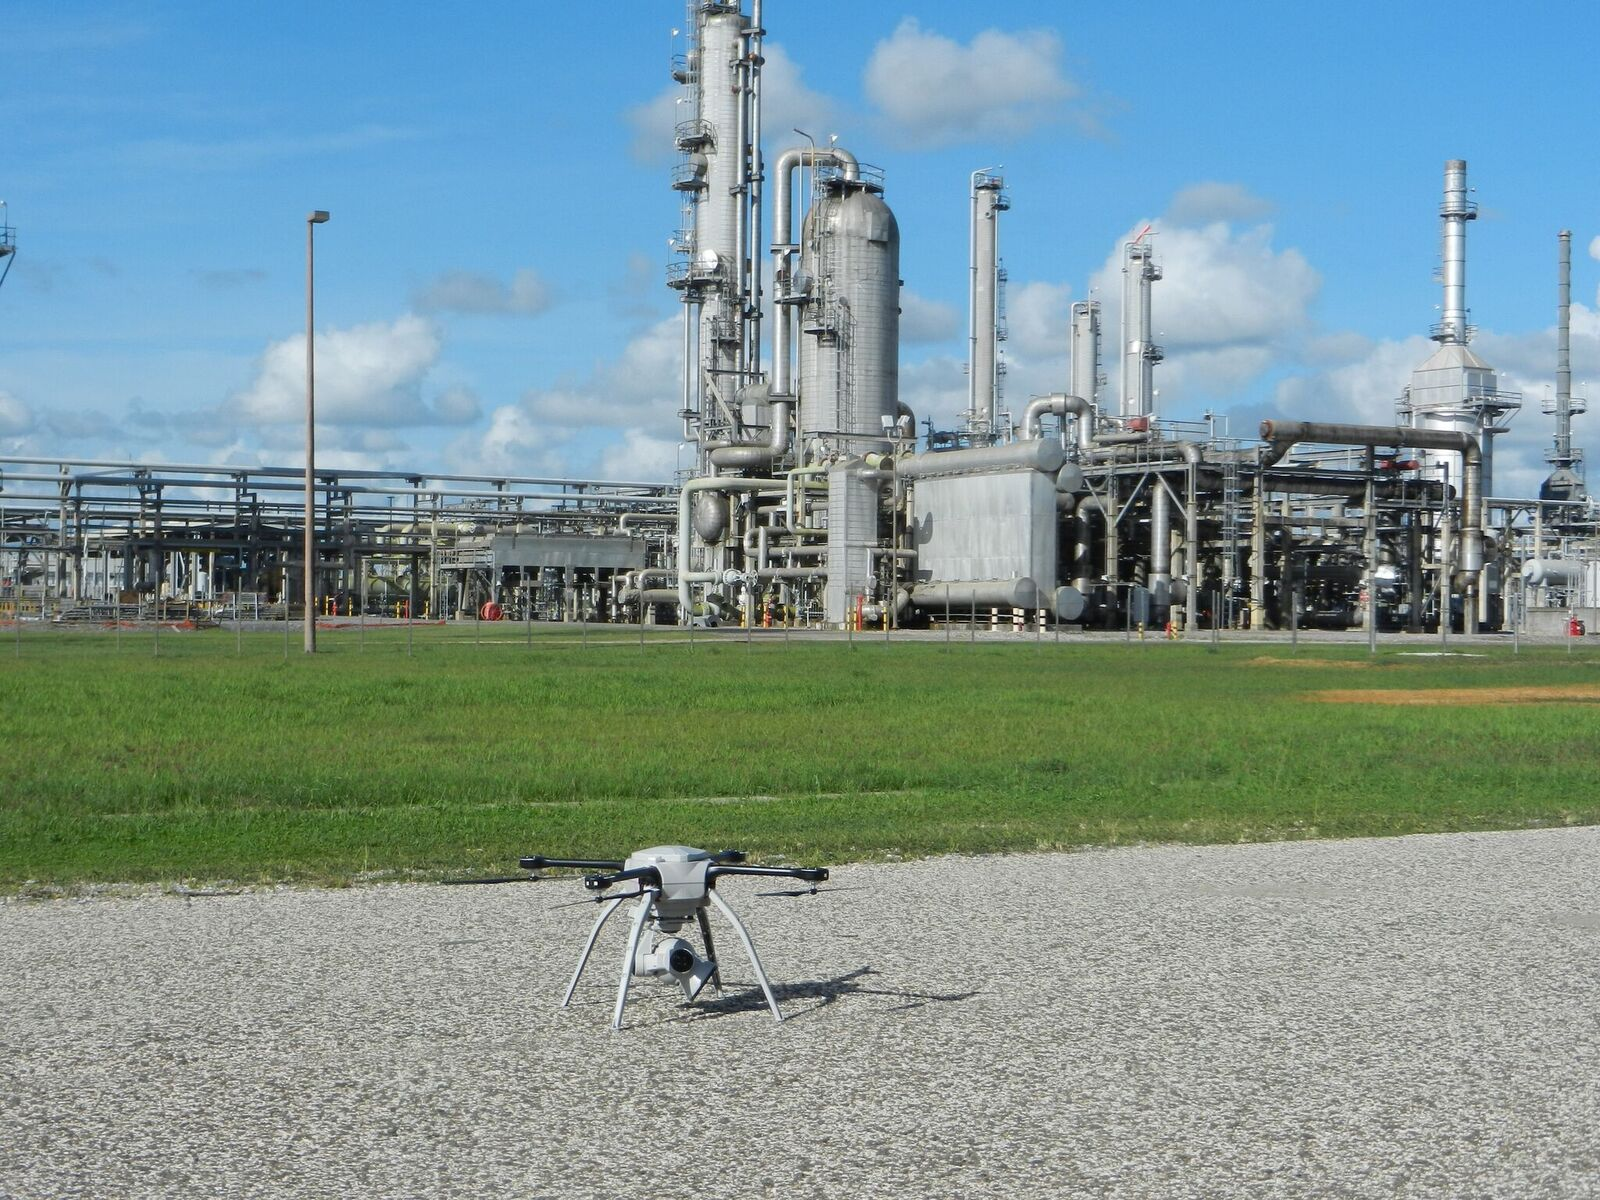 Oil-AND-GAS-DRONE-INSPECTIONS.jpeg